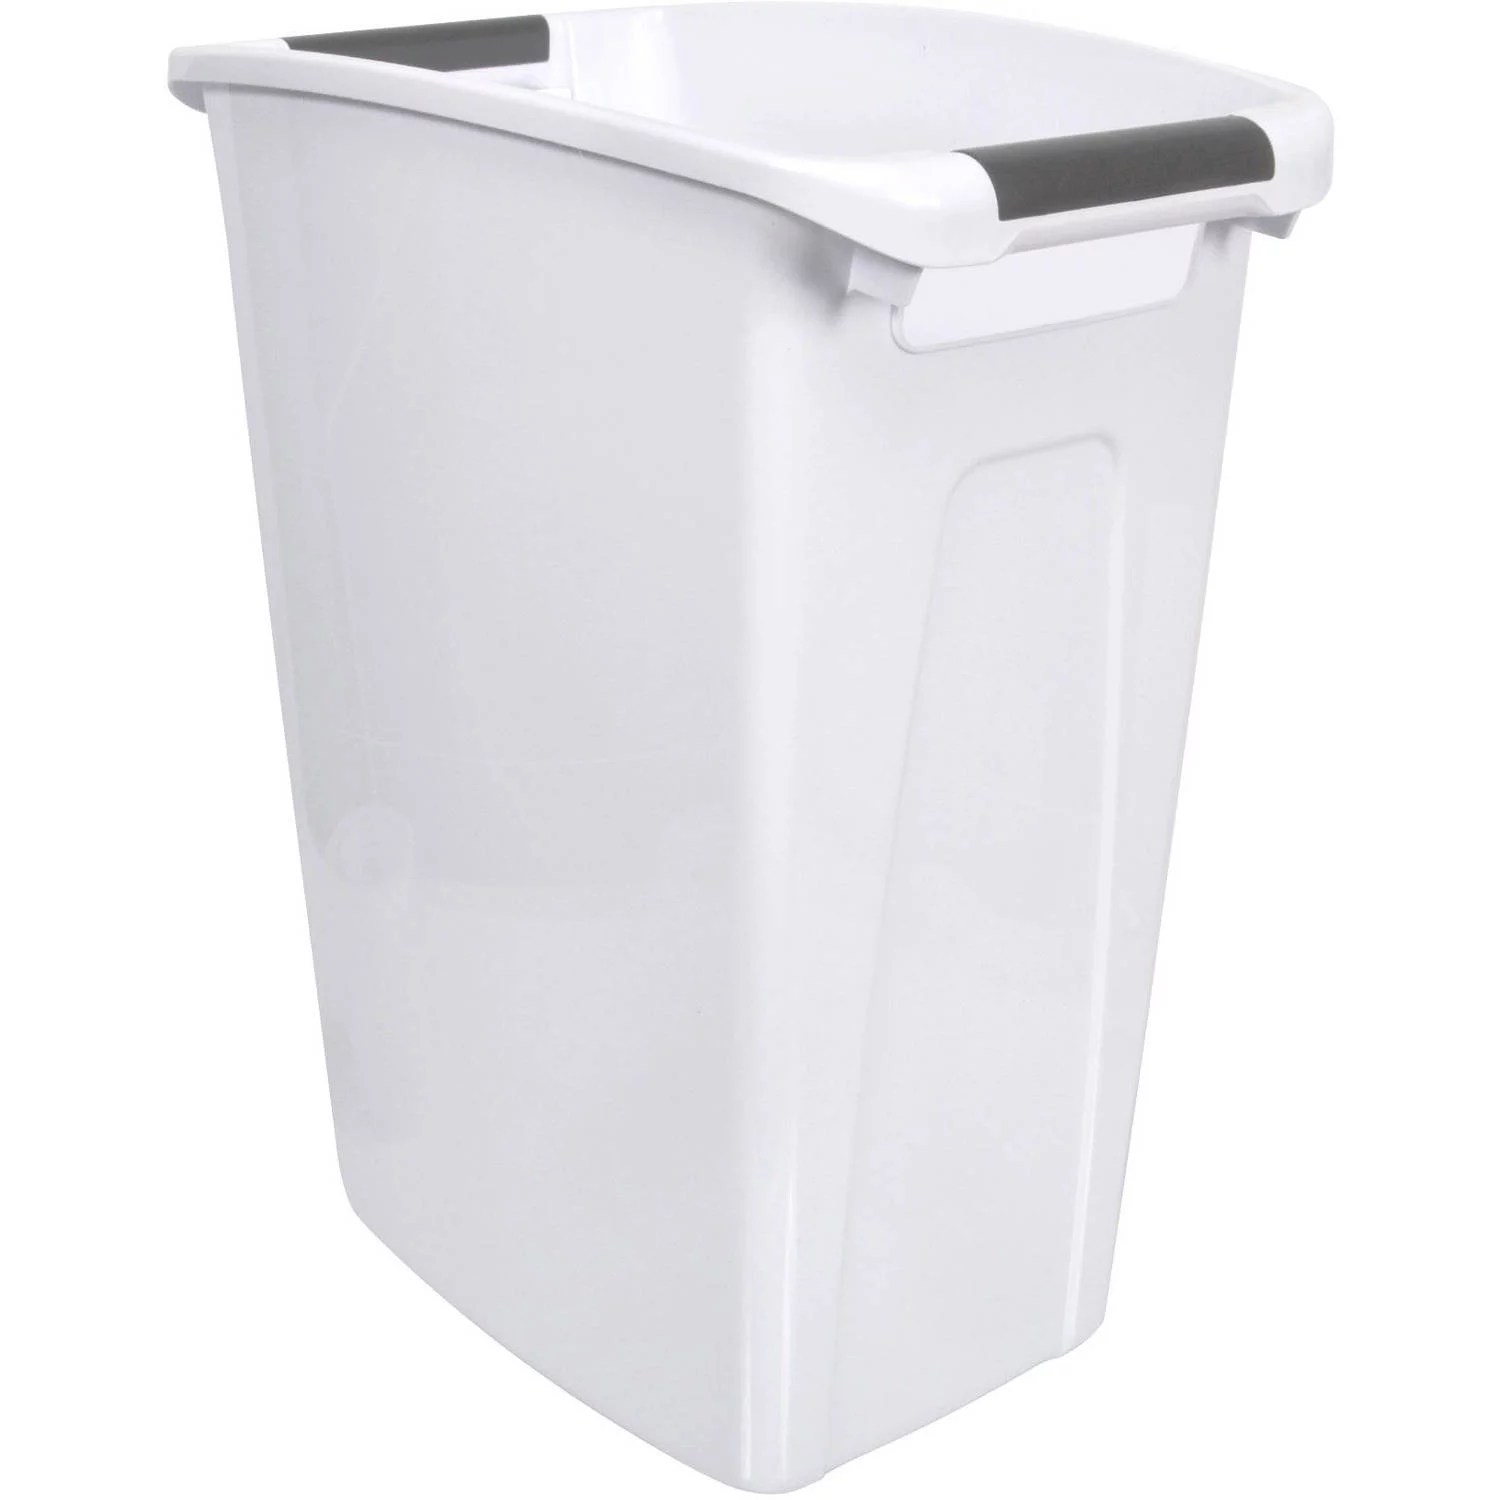 Garbage Bins Walmart Nine Stars Dzt 42 1 Touchless Stainless Steel 11 1 Gallon Trash Can